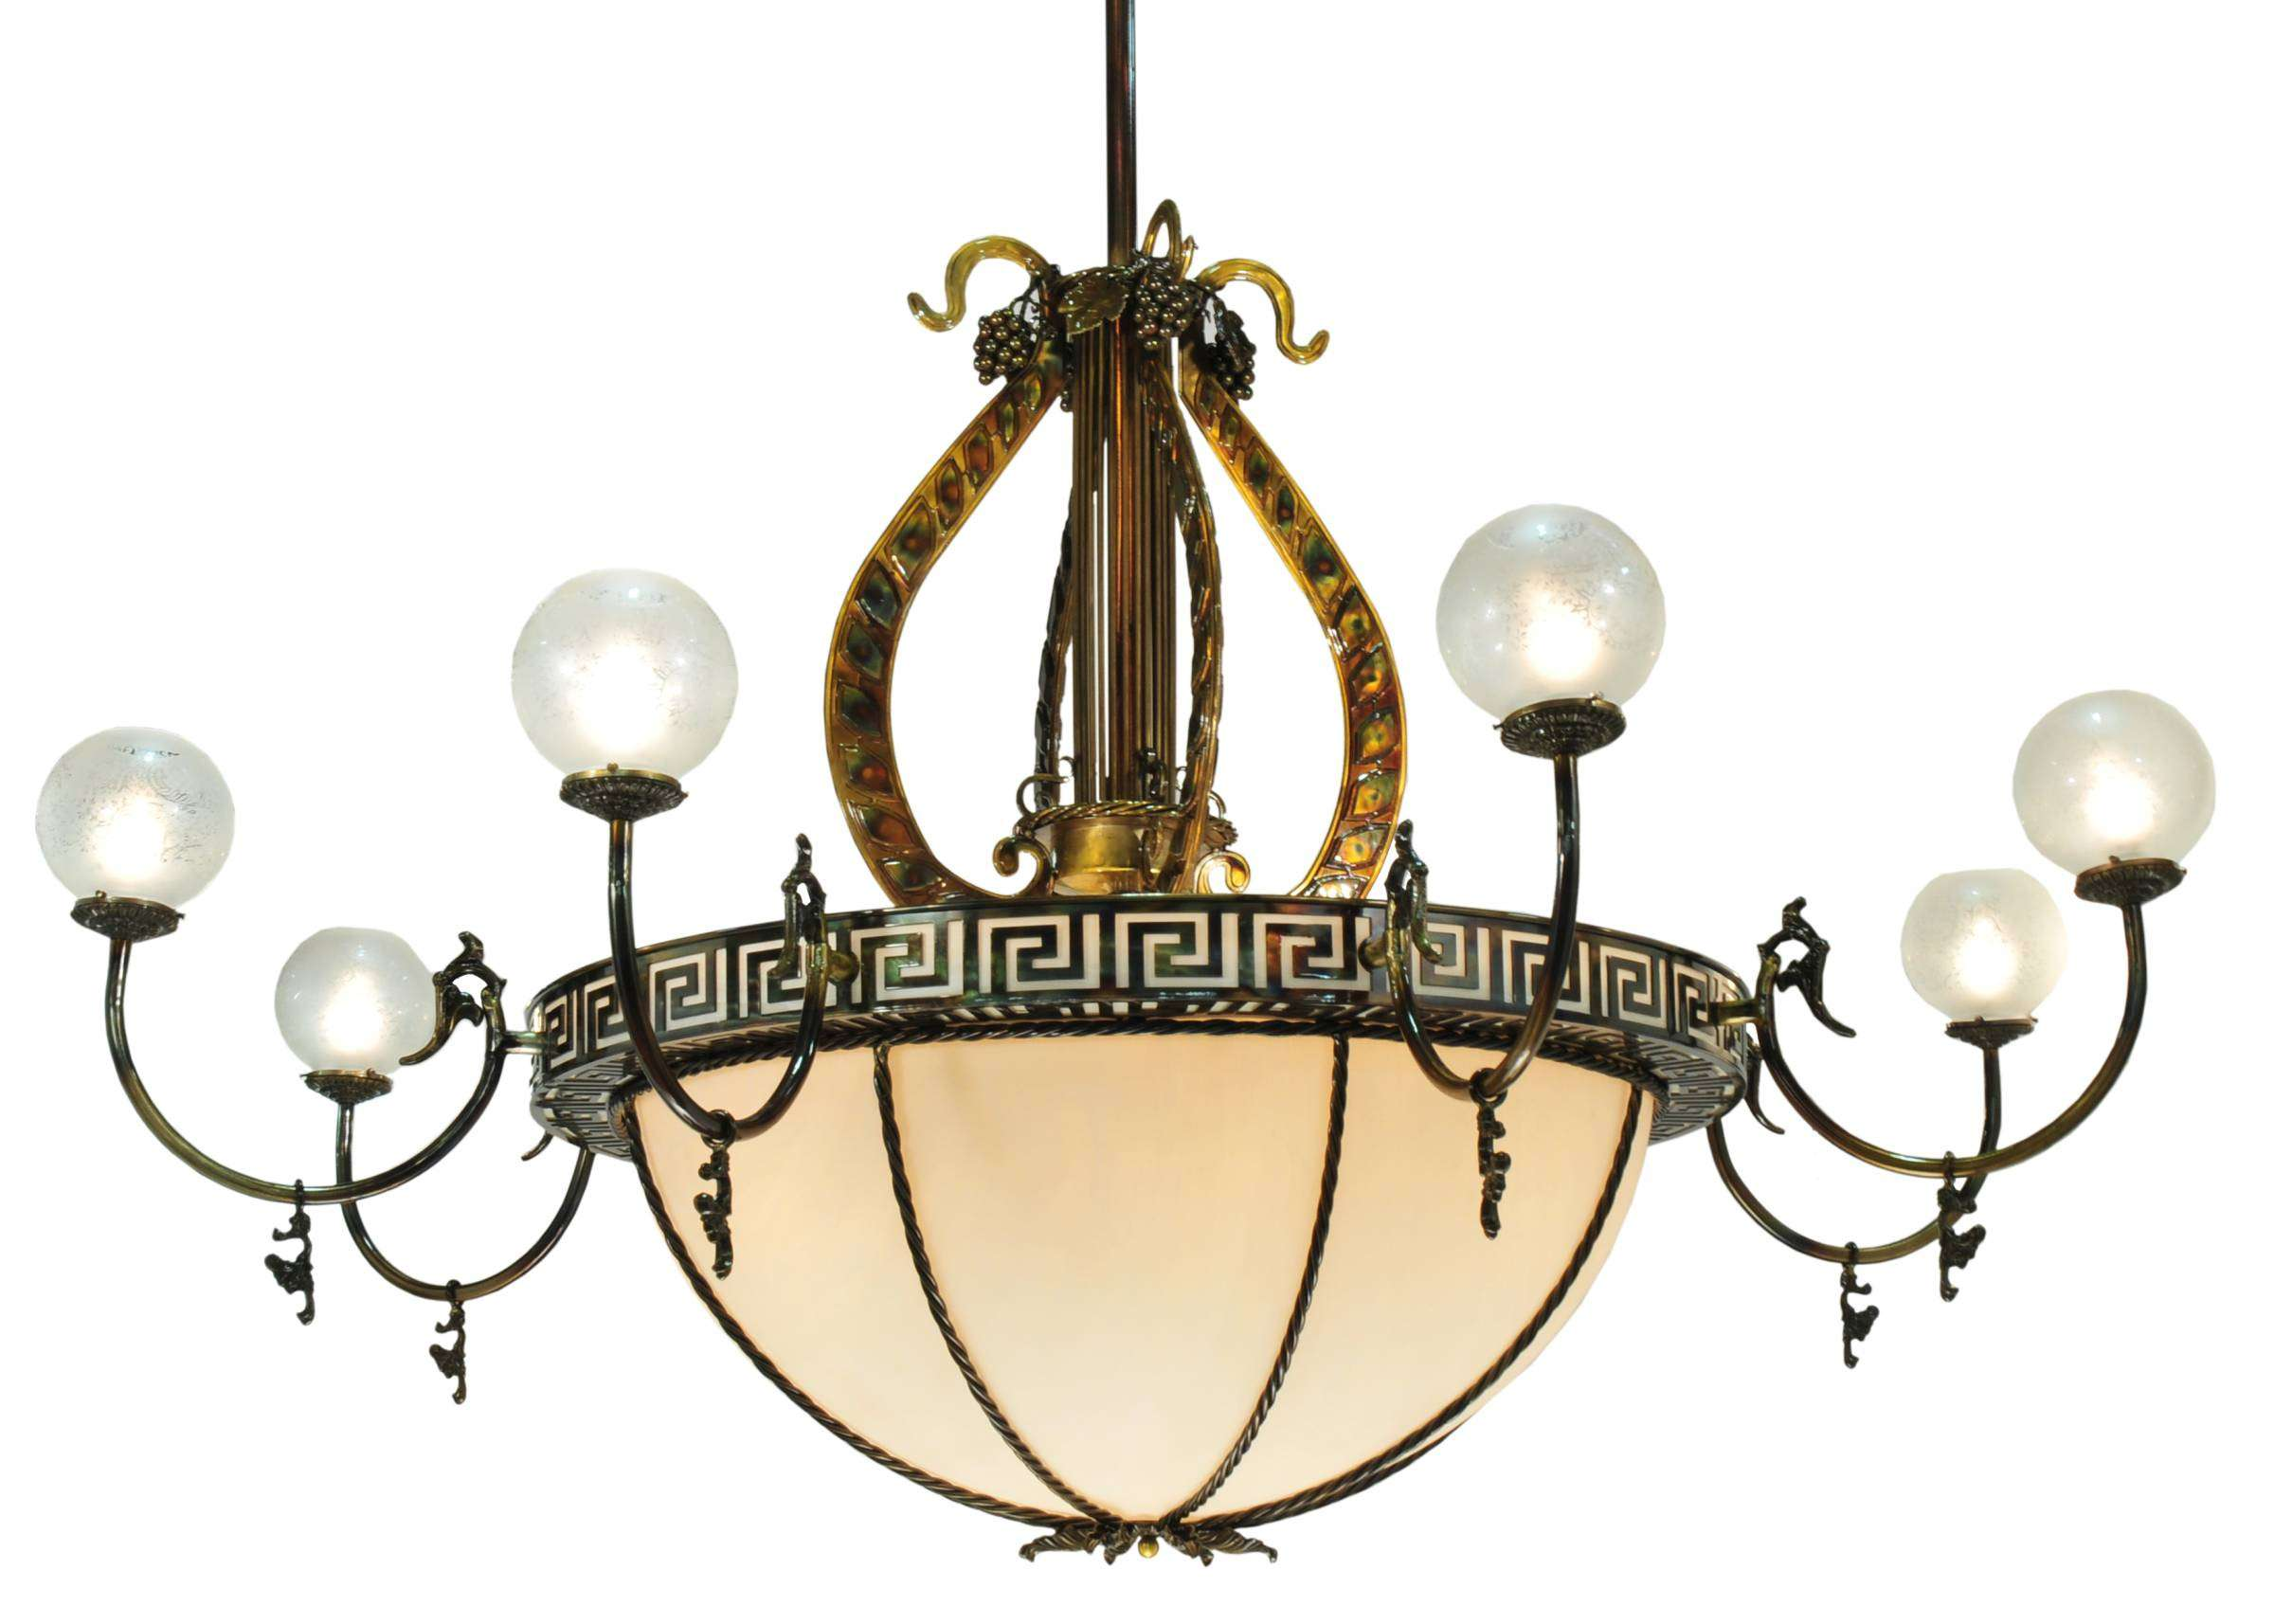 Meyda Tiffany 106965 Lyre 8 Arm Chandelier in Brass finish with Faux Alabaster